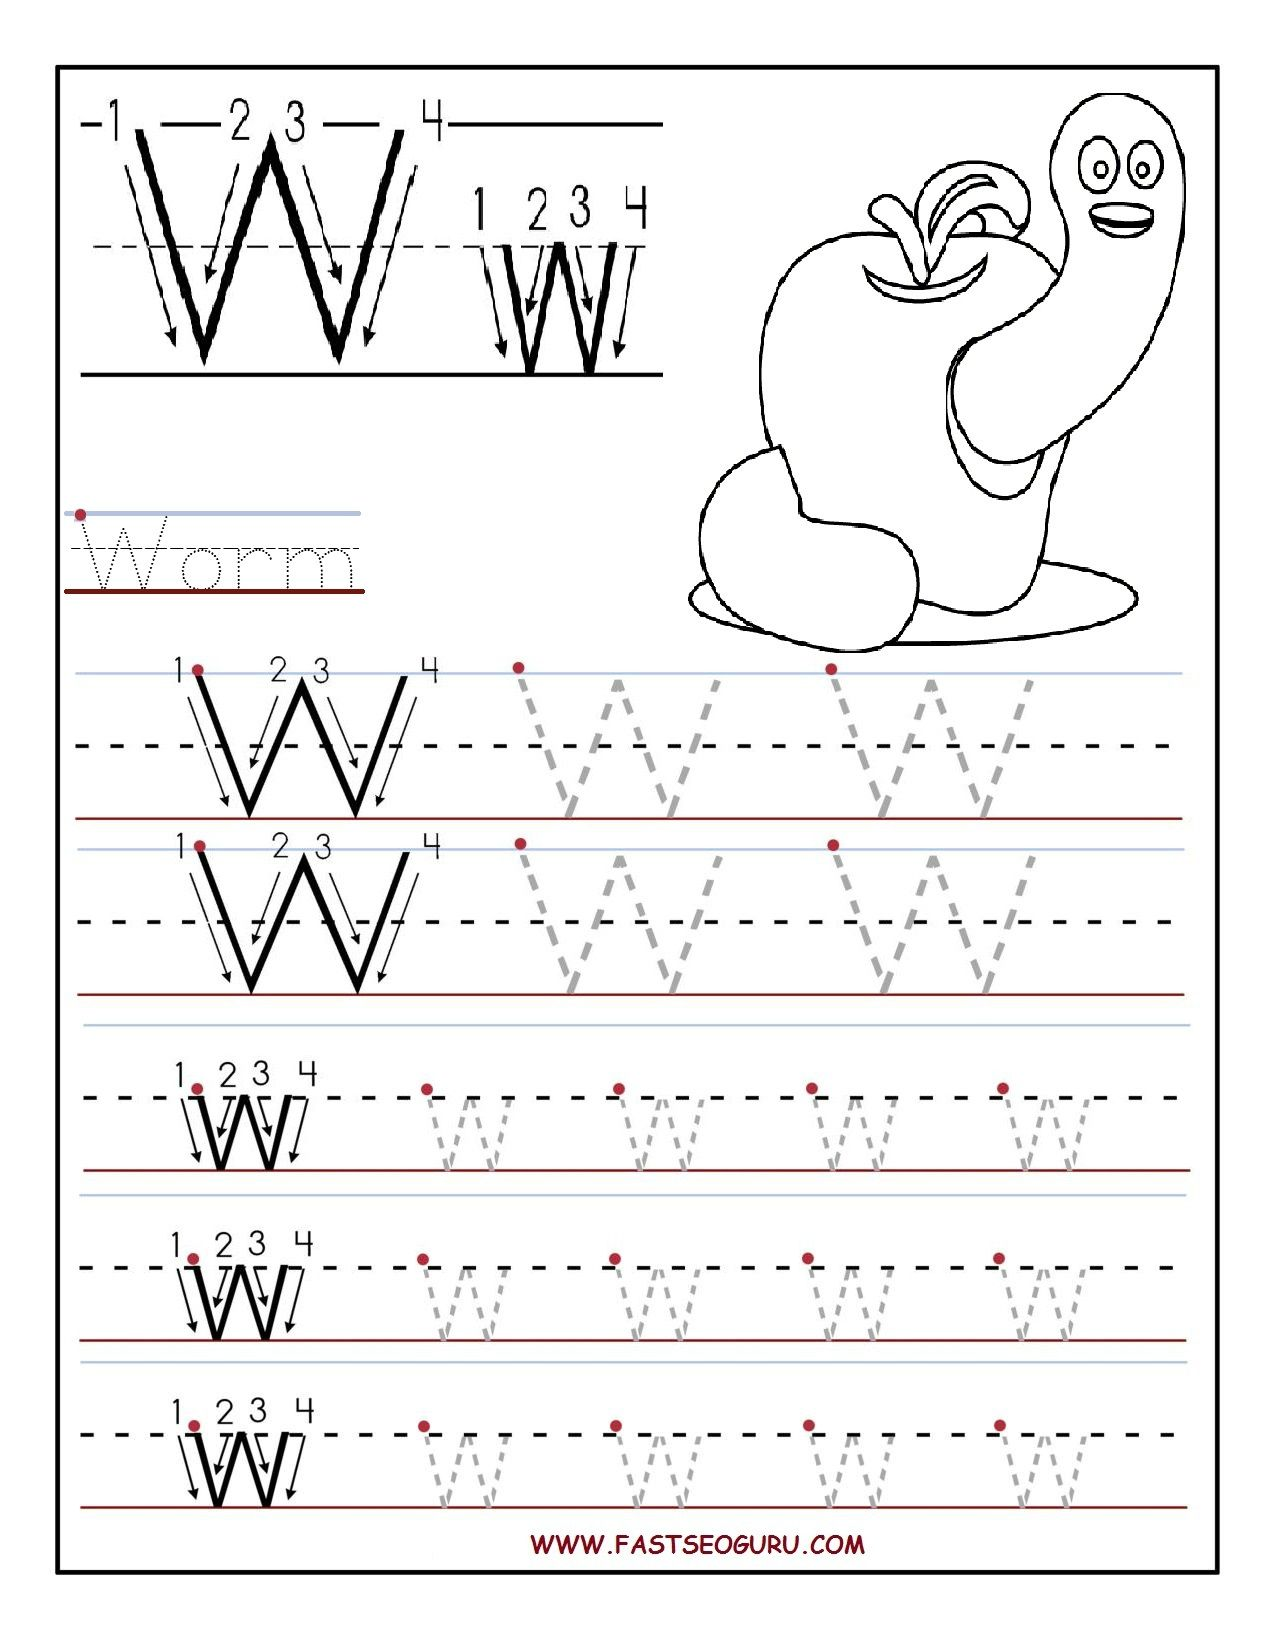 printable letter w tracing worksheets for preschool going gluten free pinterest tracing. Black Bedroom Furniture Sets. Home Design Ideas